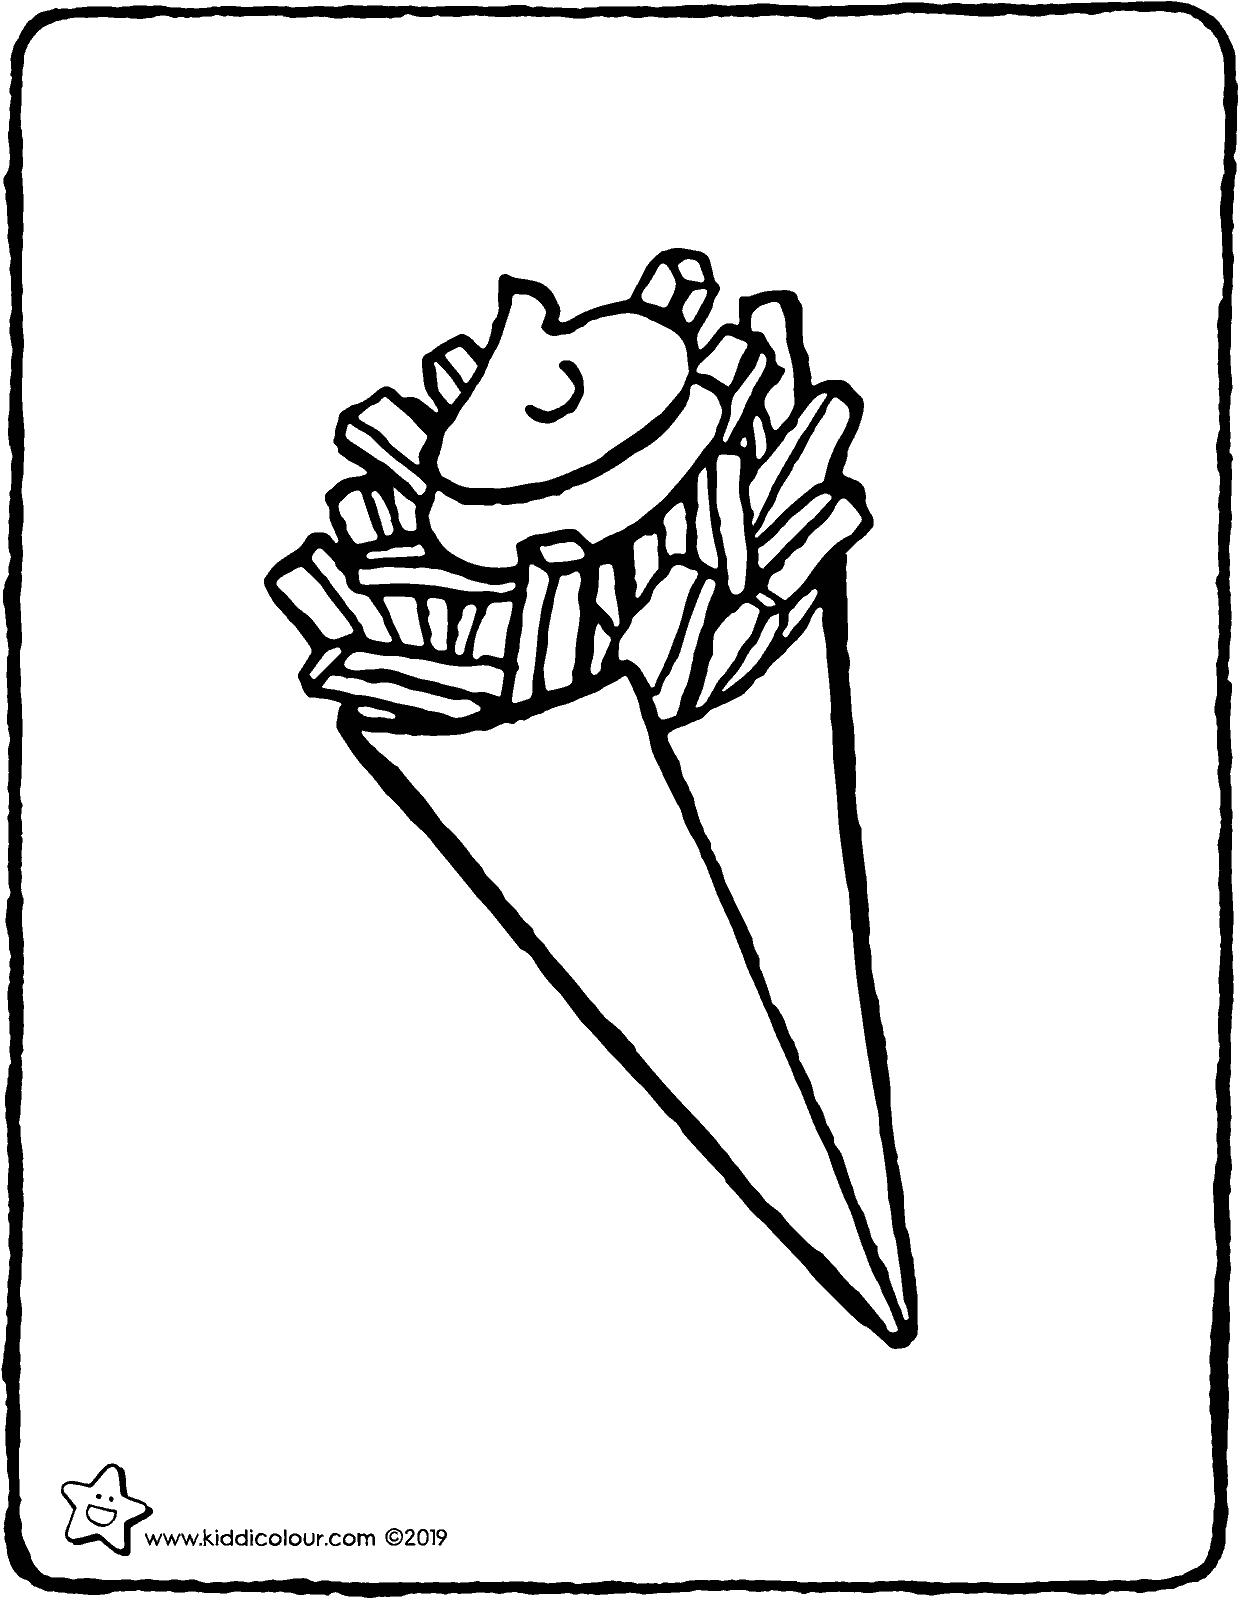 a cone of chips colouring page drawing picture 01V